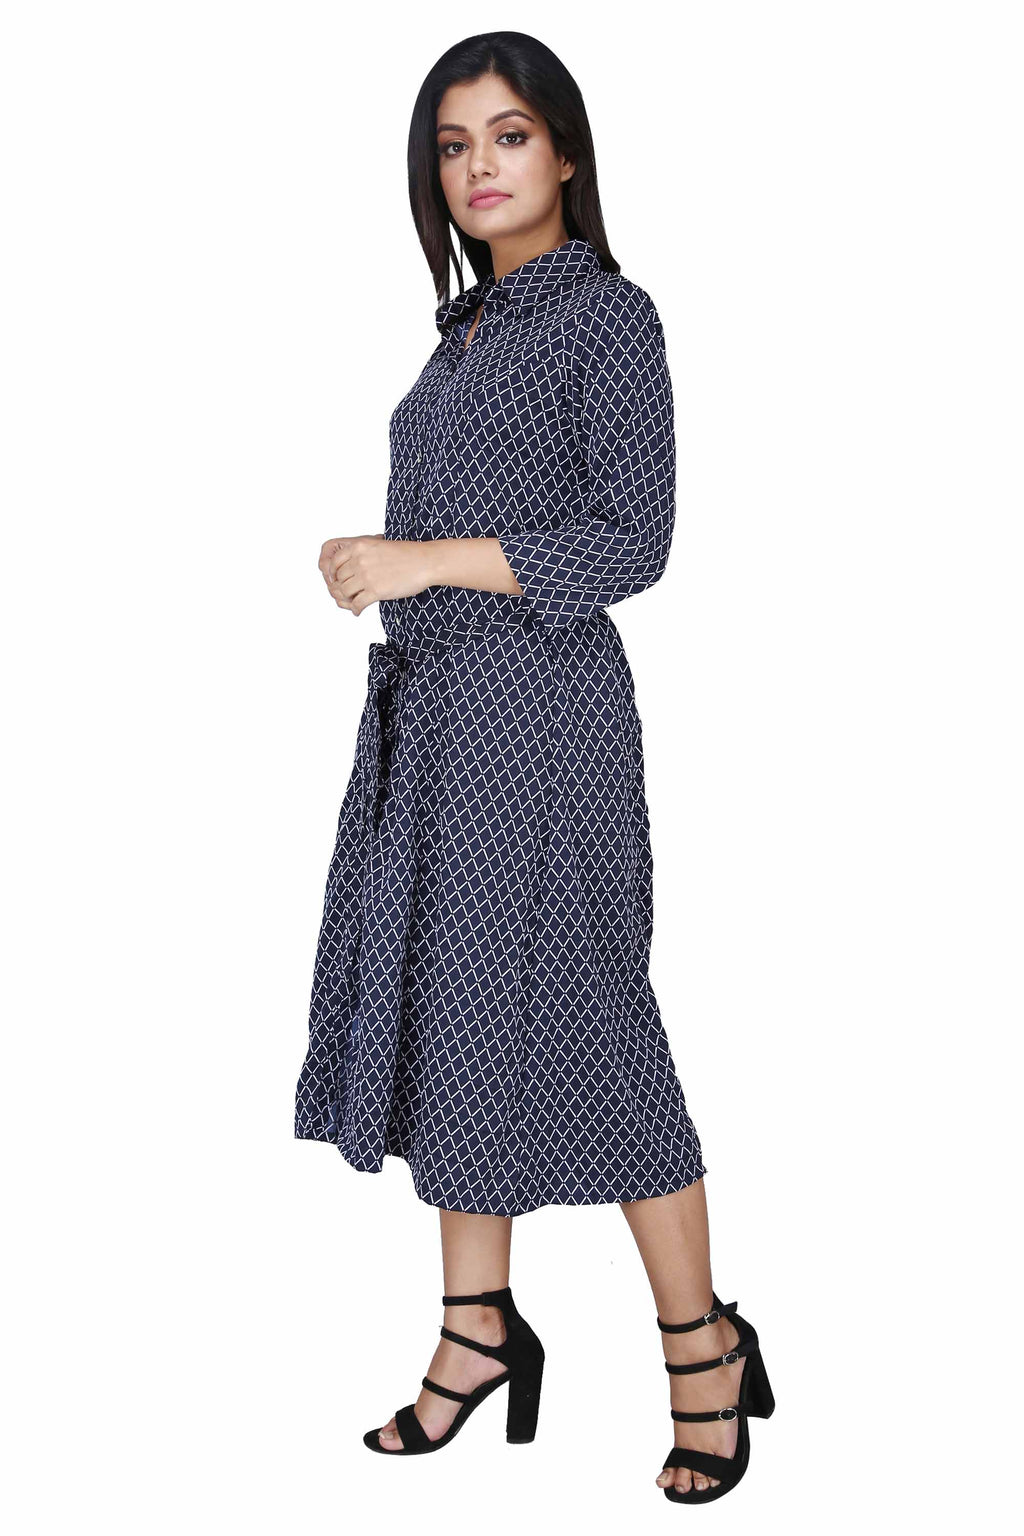 Women's Printed Navy Midi Dress - K1342ND